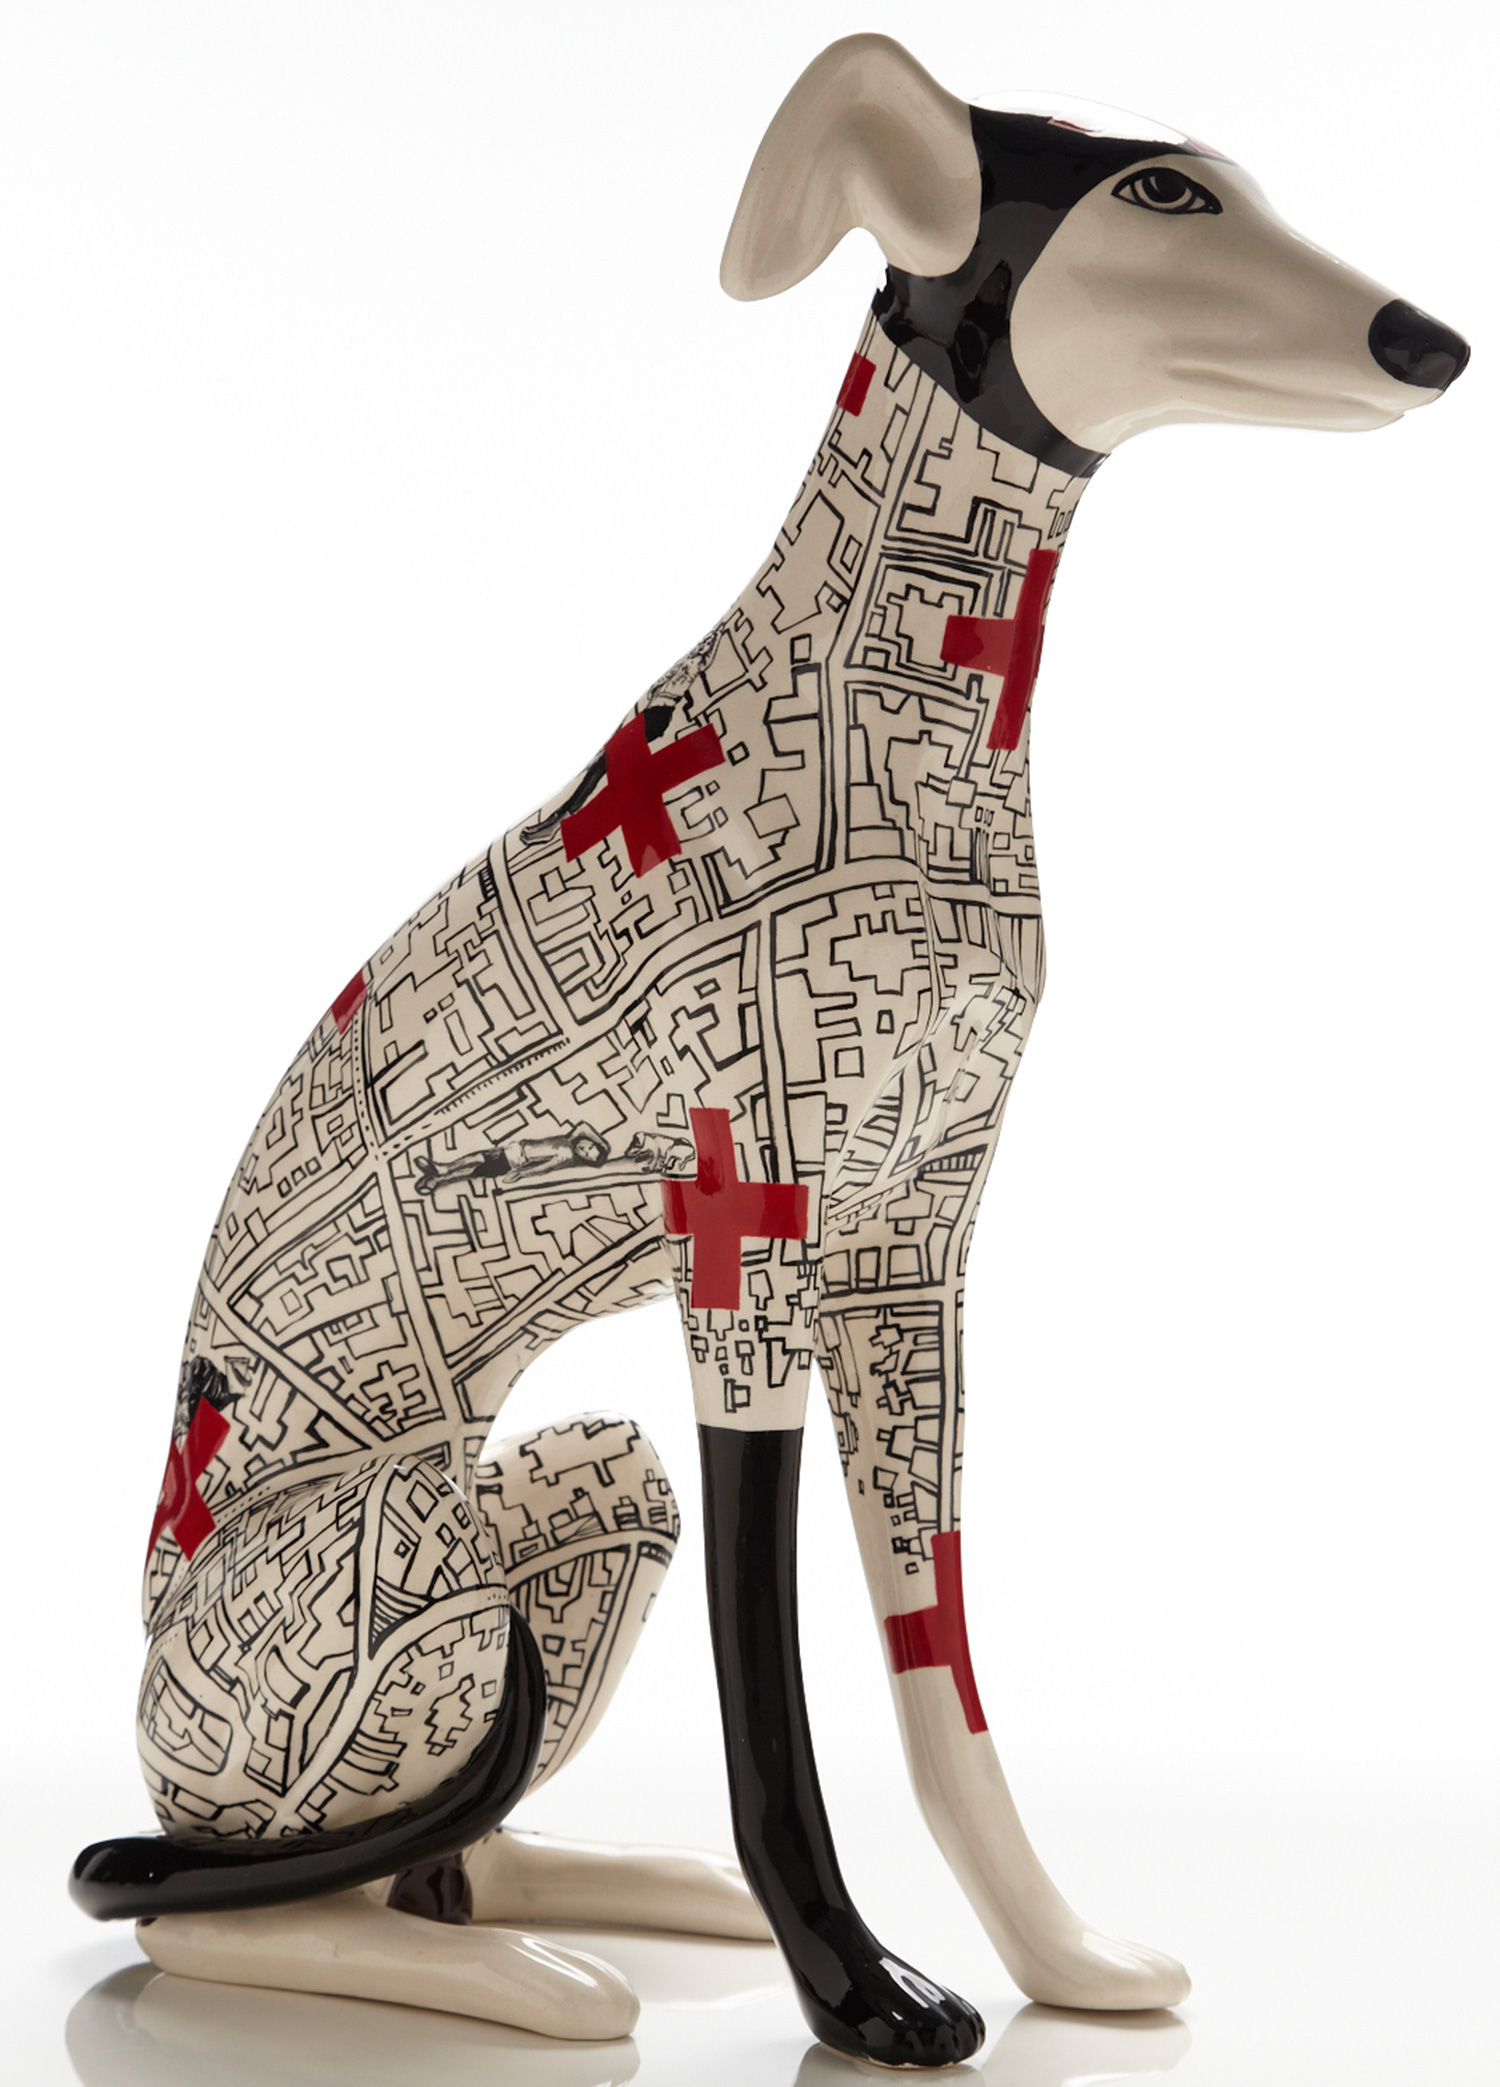 seated greyhound with geometric patters